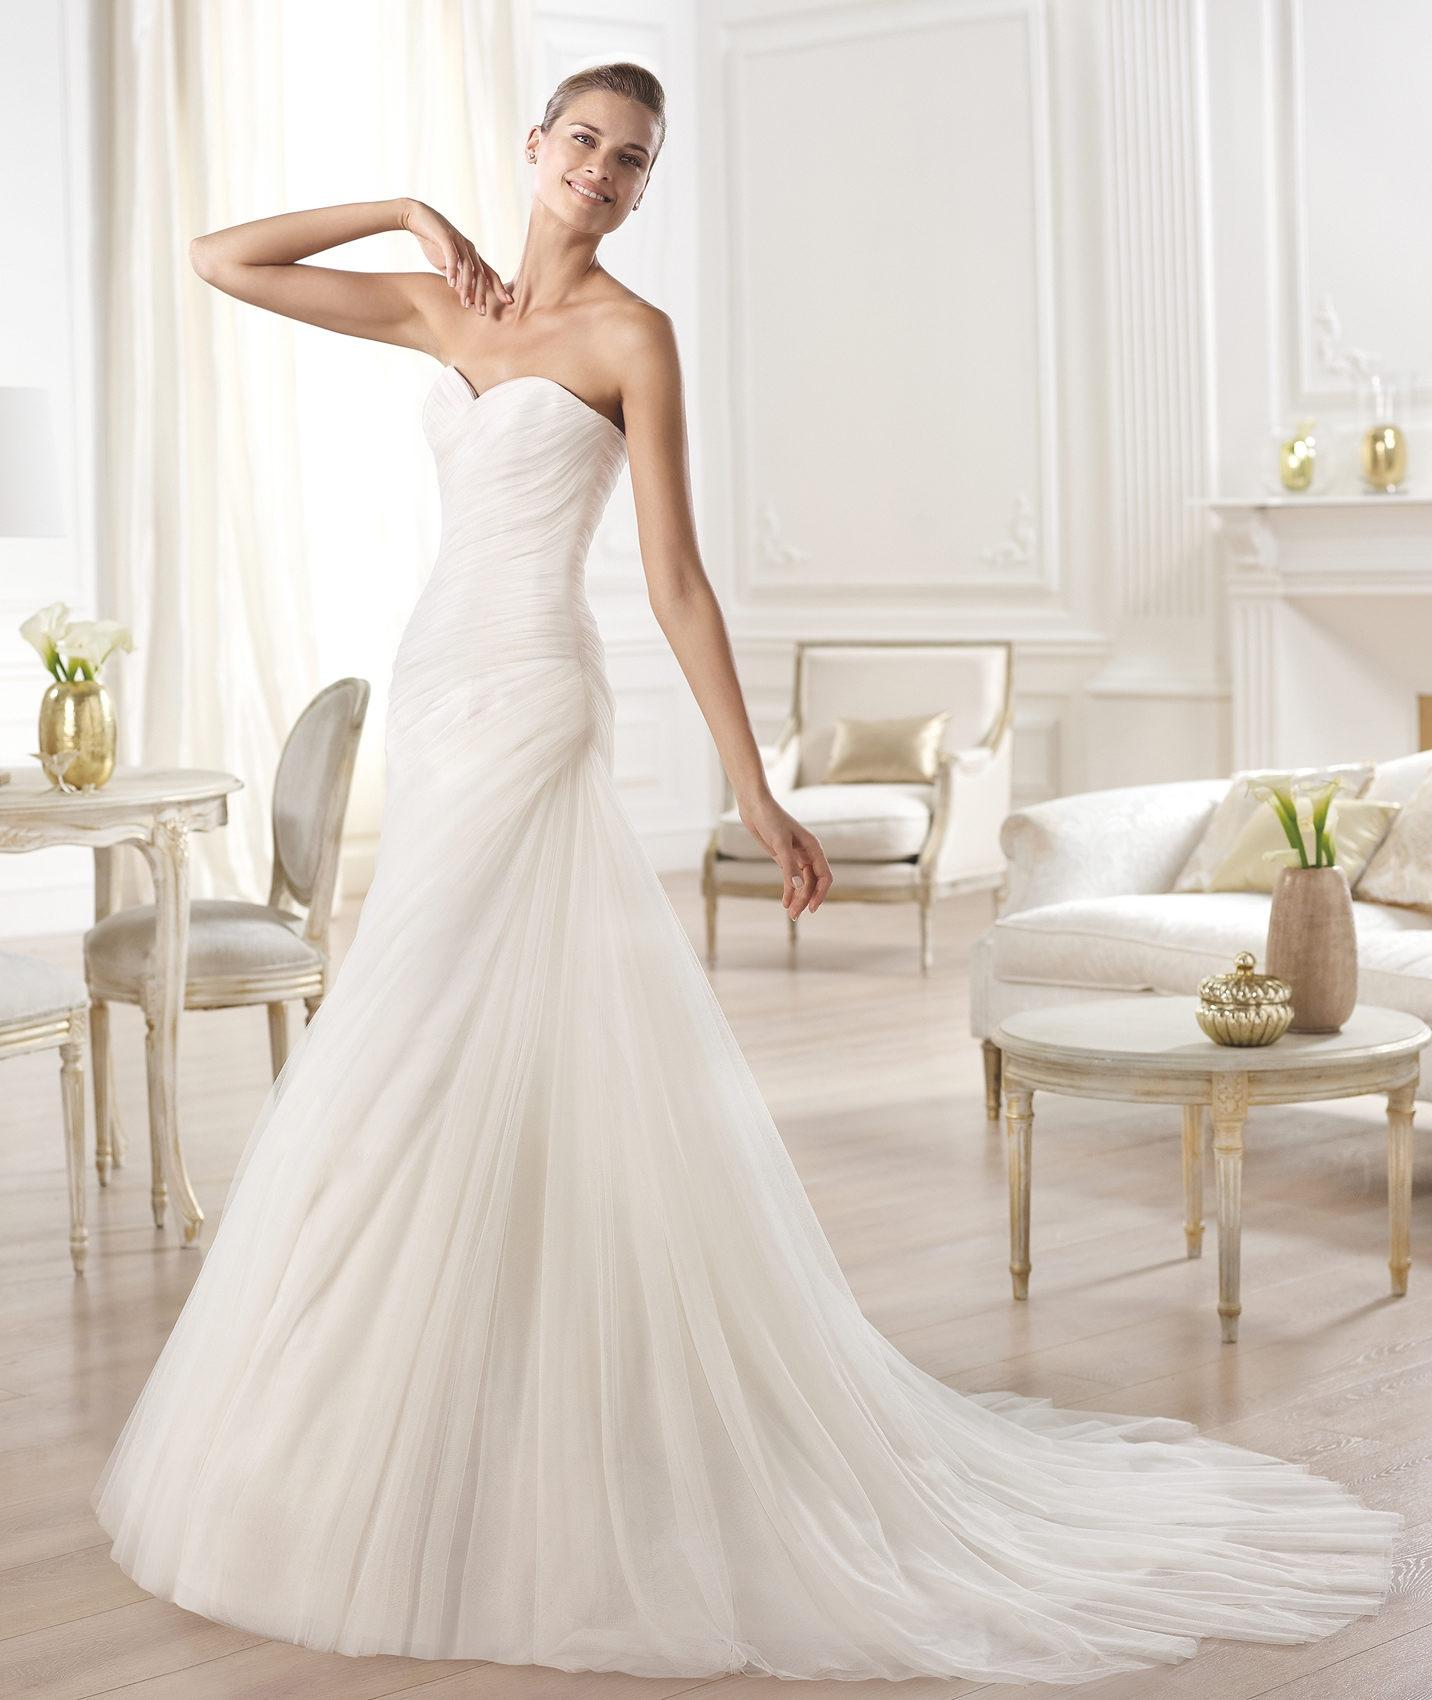 Lovely Wedding Dresses Las Vegas Outlet – Wedding